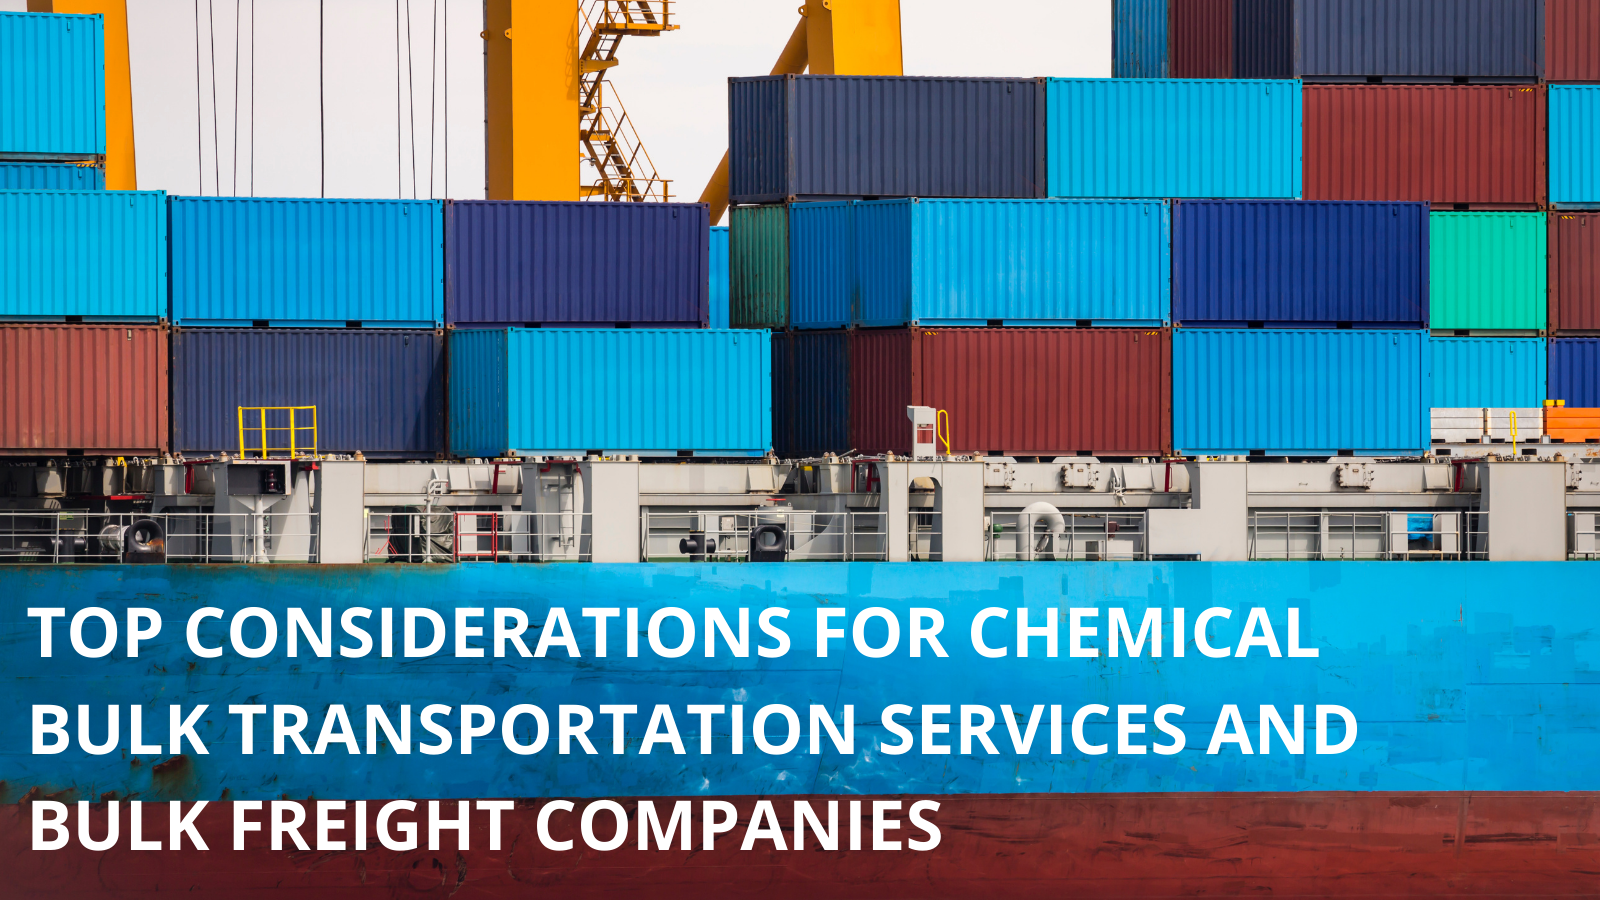 Top Considerations for Chemical Bulk Transportation Services and Bulk Freight Companies